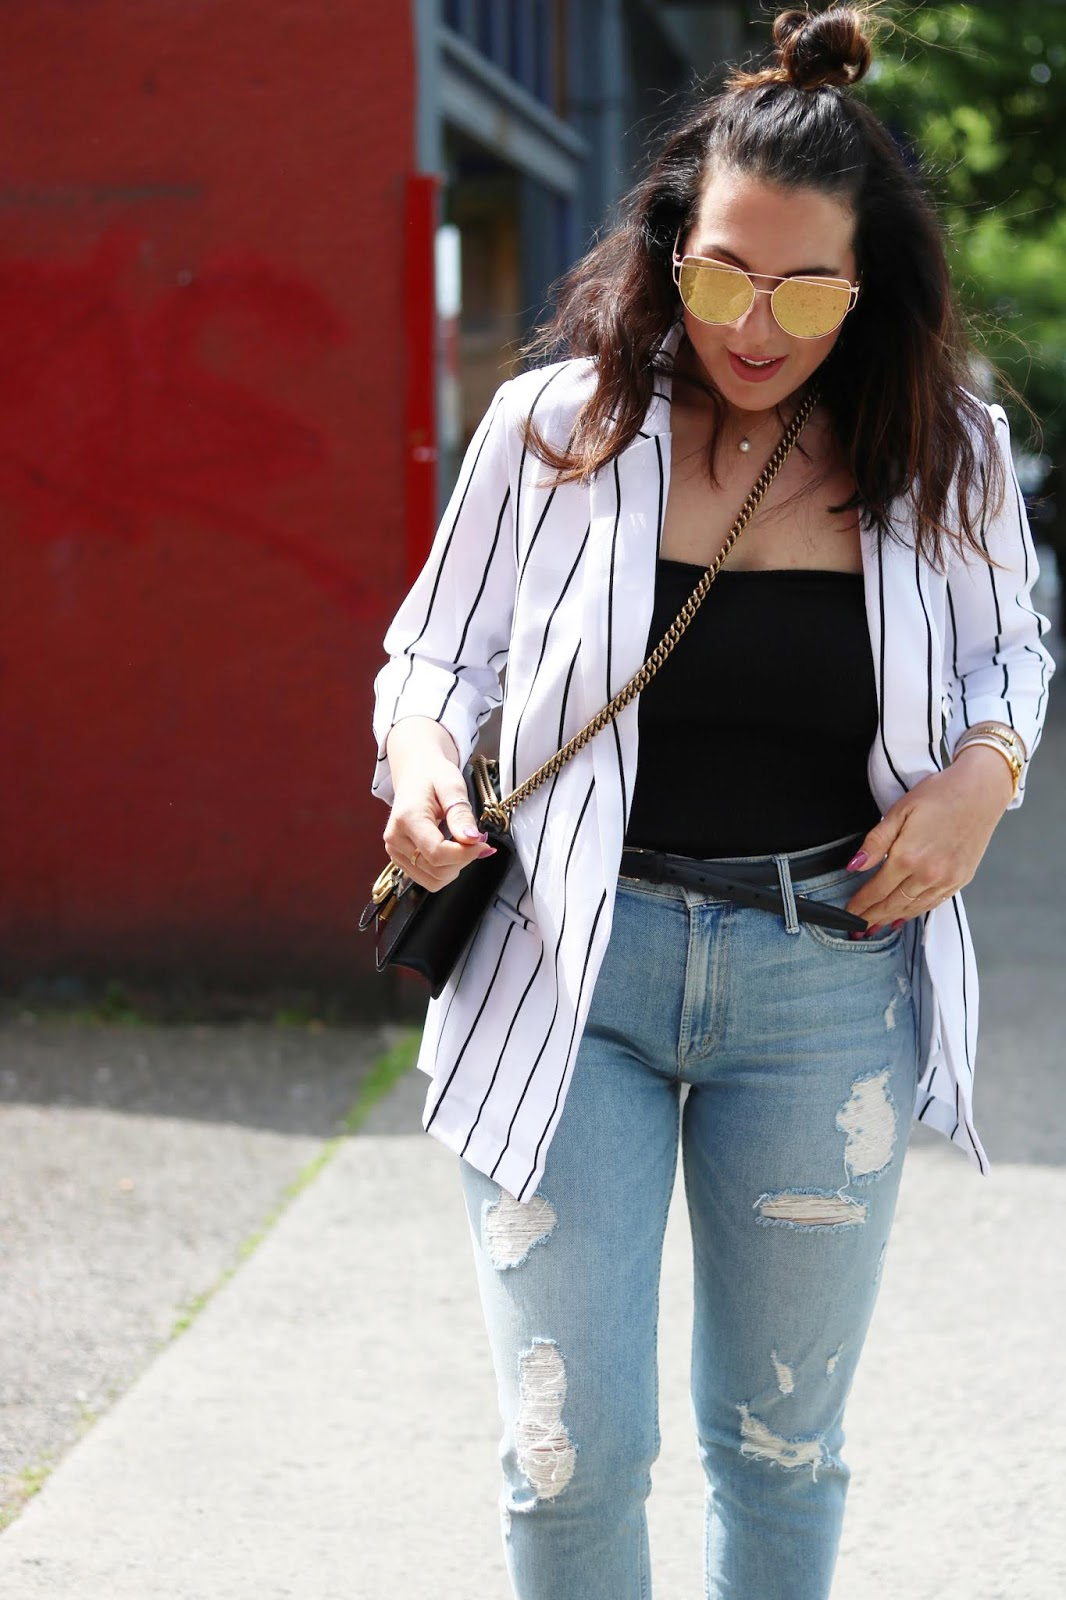 Black and white striped blazer outfit le chateau mother premium jeans tube top vancouver fashion blogger aleesha harris